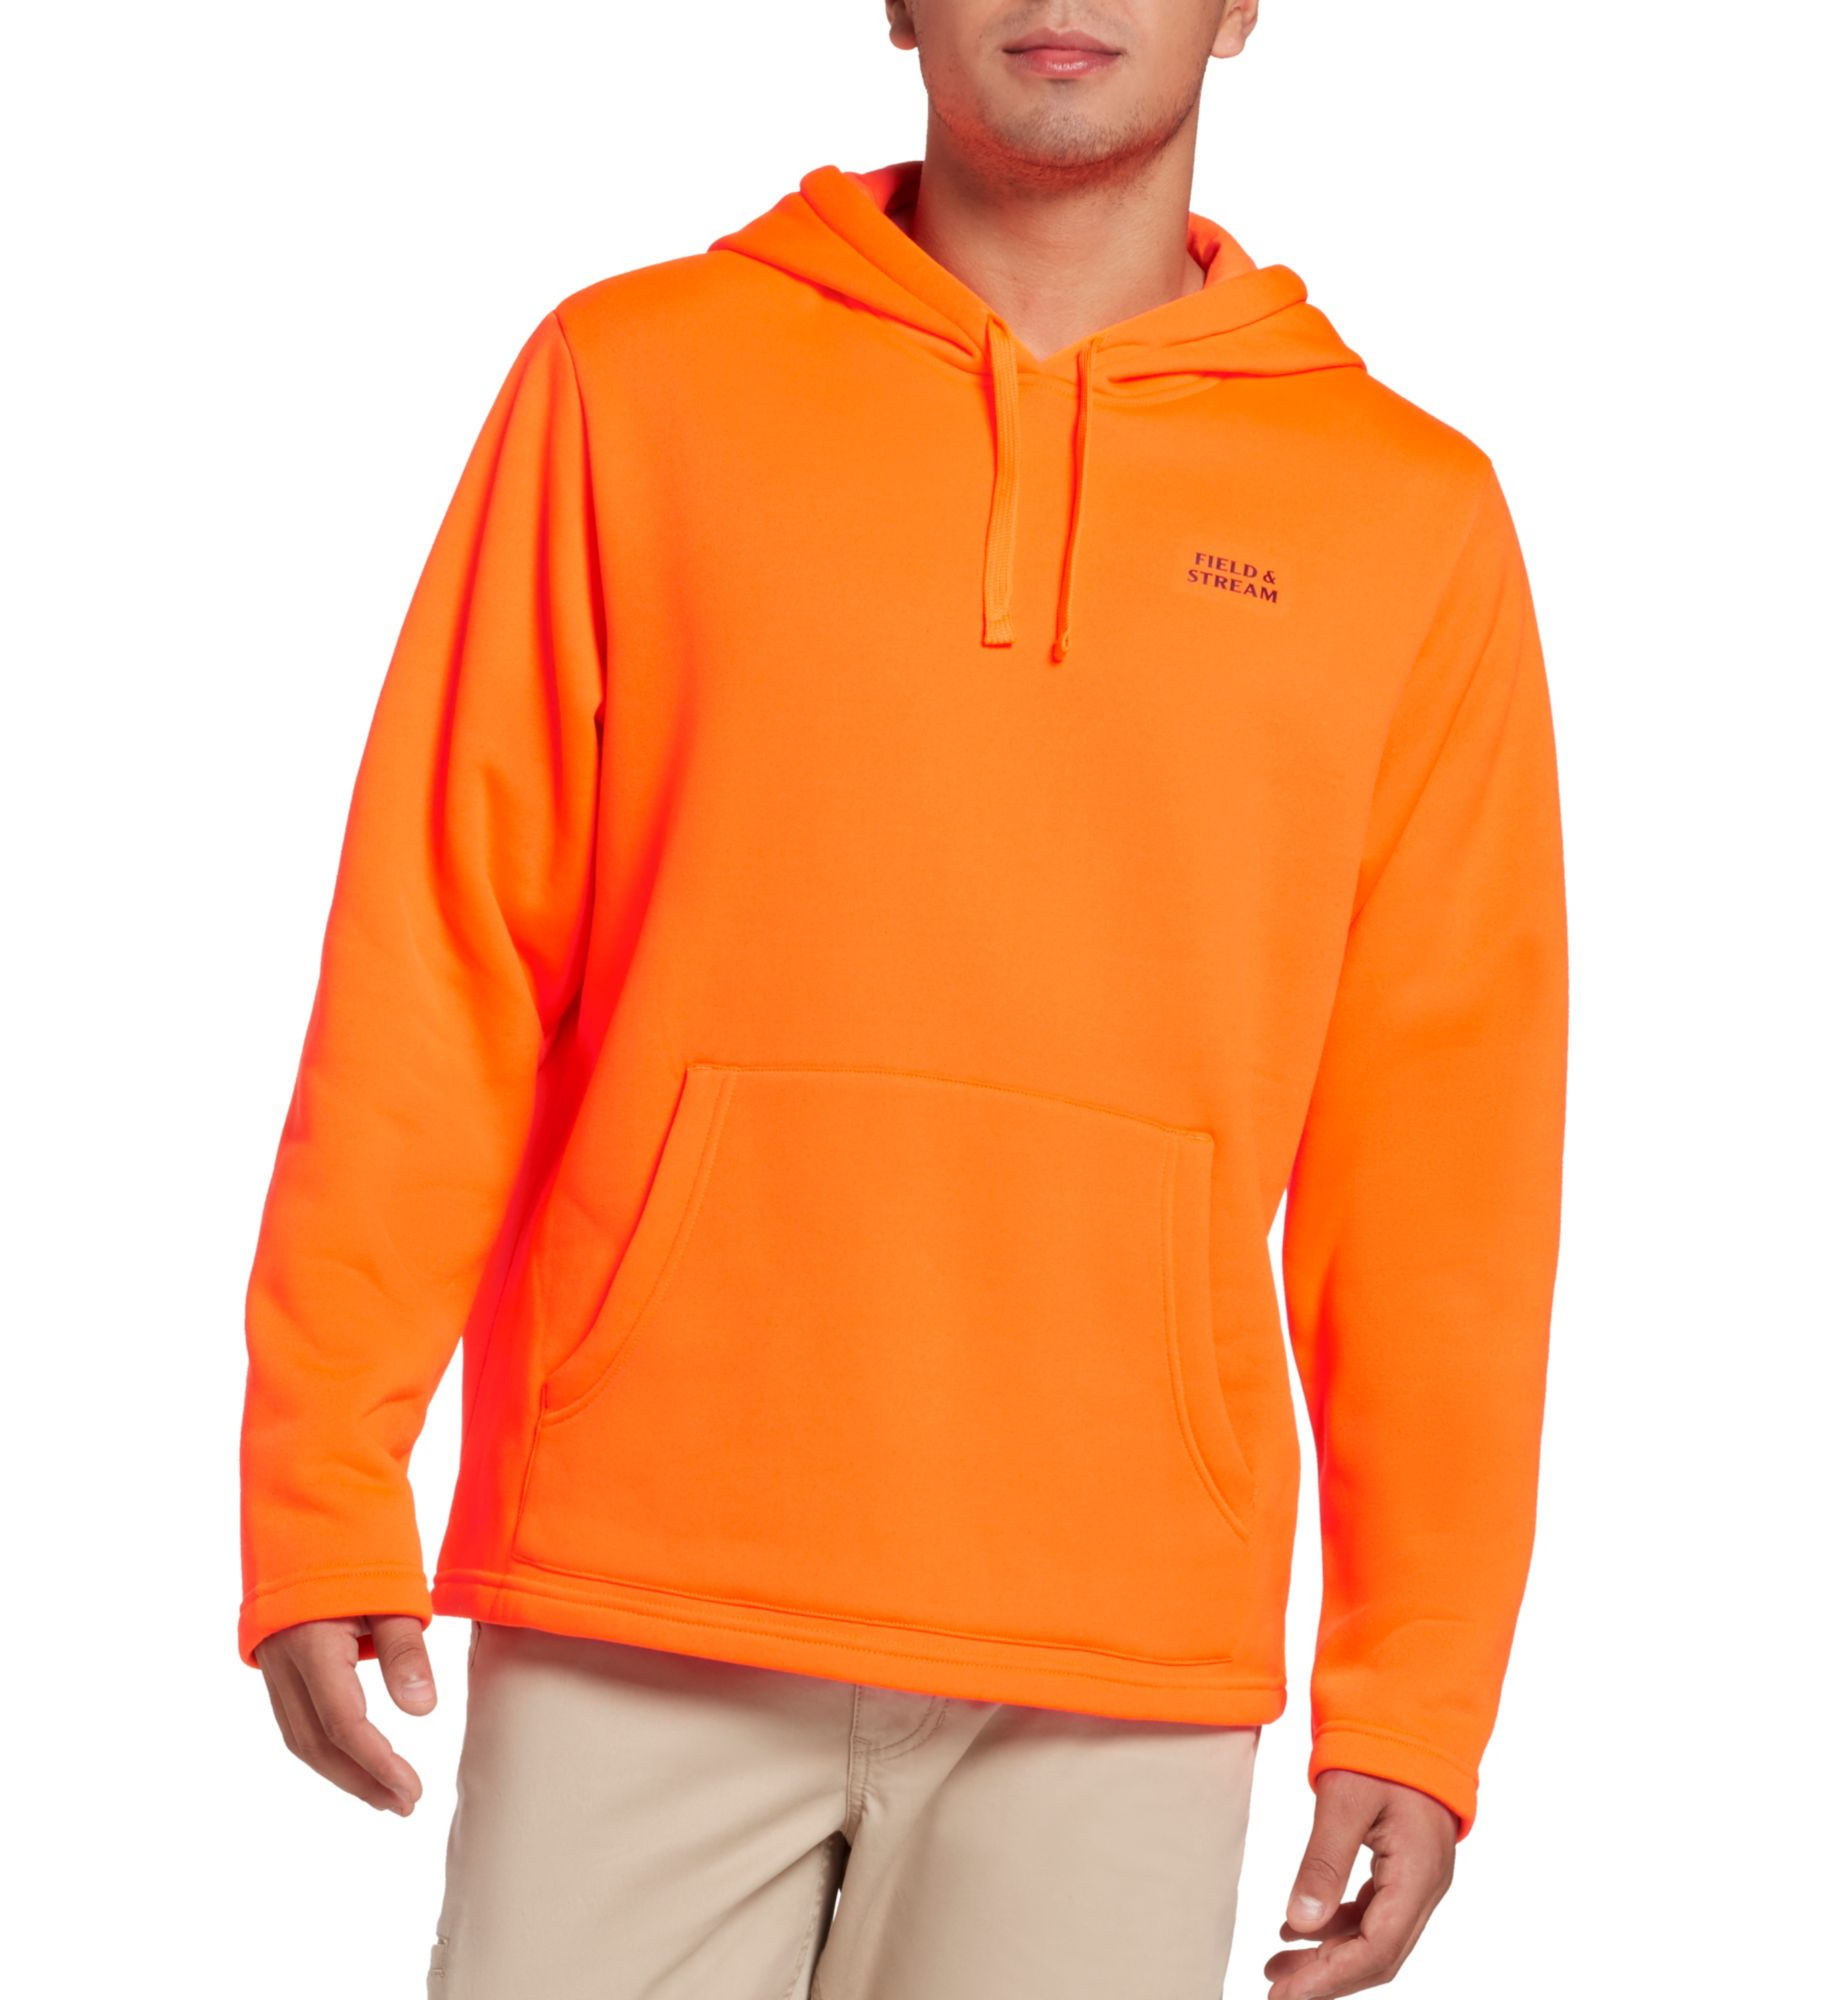 Field & Stream Men's Performance Fleece Camo Hoodie (Regular and Big & Tall), Small, Blaze Orange